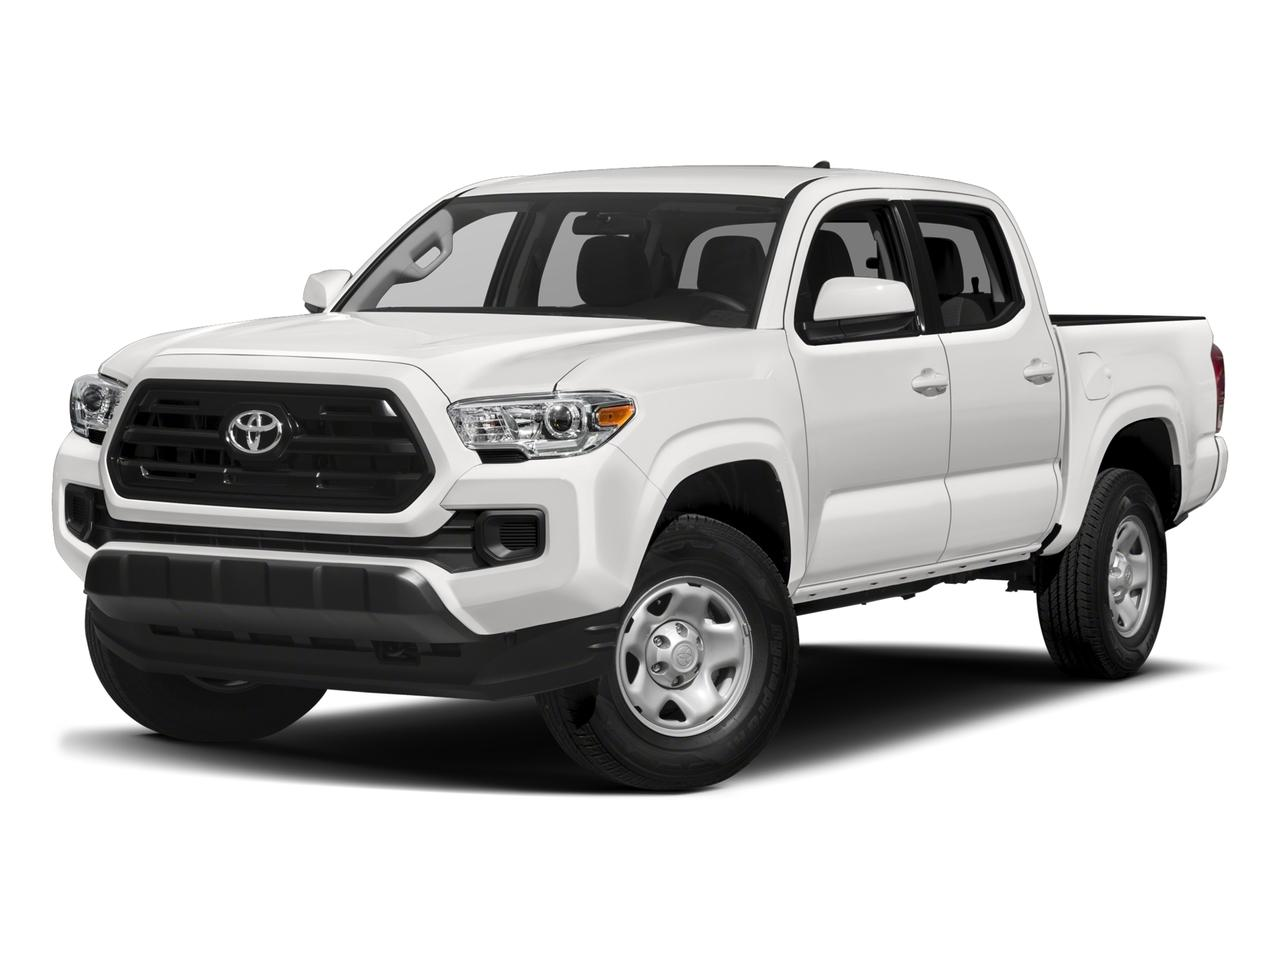 2017 Toyota Tacoma Vehicle Photo in American Fork, UT 84003